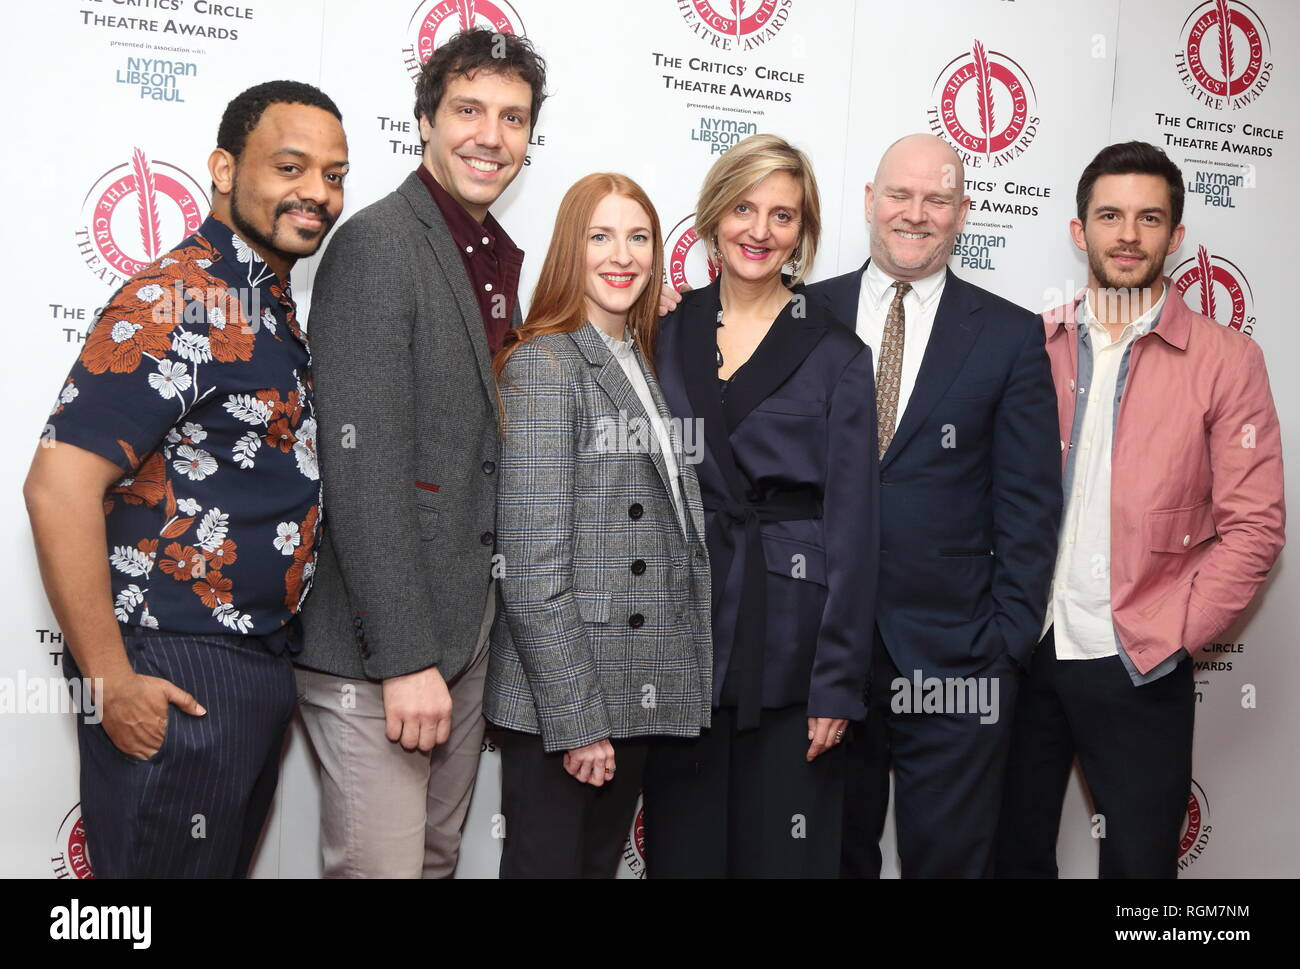 Ashley Campbell, Alex Gaumond, Rosalie Craig, Marianne Elliott, Christopher Harper and Jonathan Bailey at The Critics' Circle Theatre Awards at the Prince of Wales Theatre, Coventry Street. - Stock Image